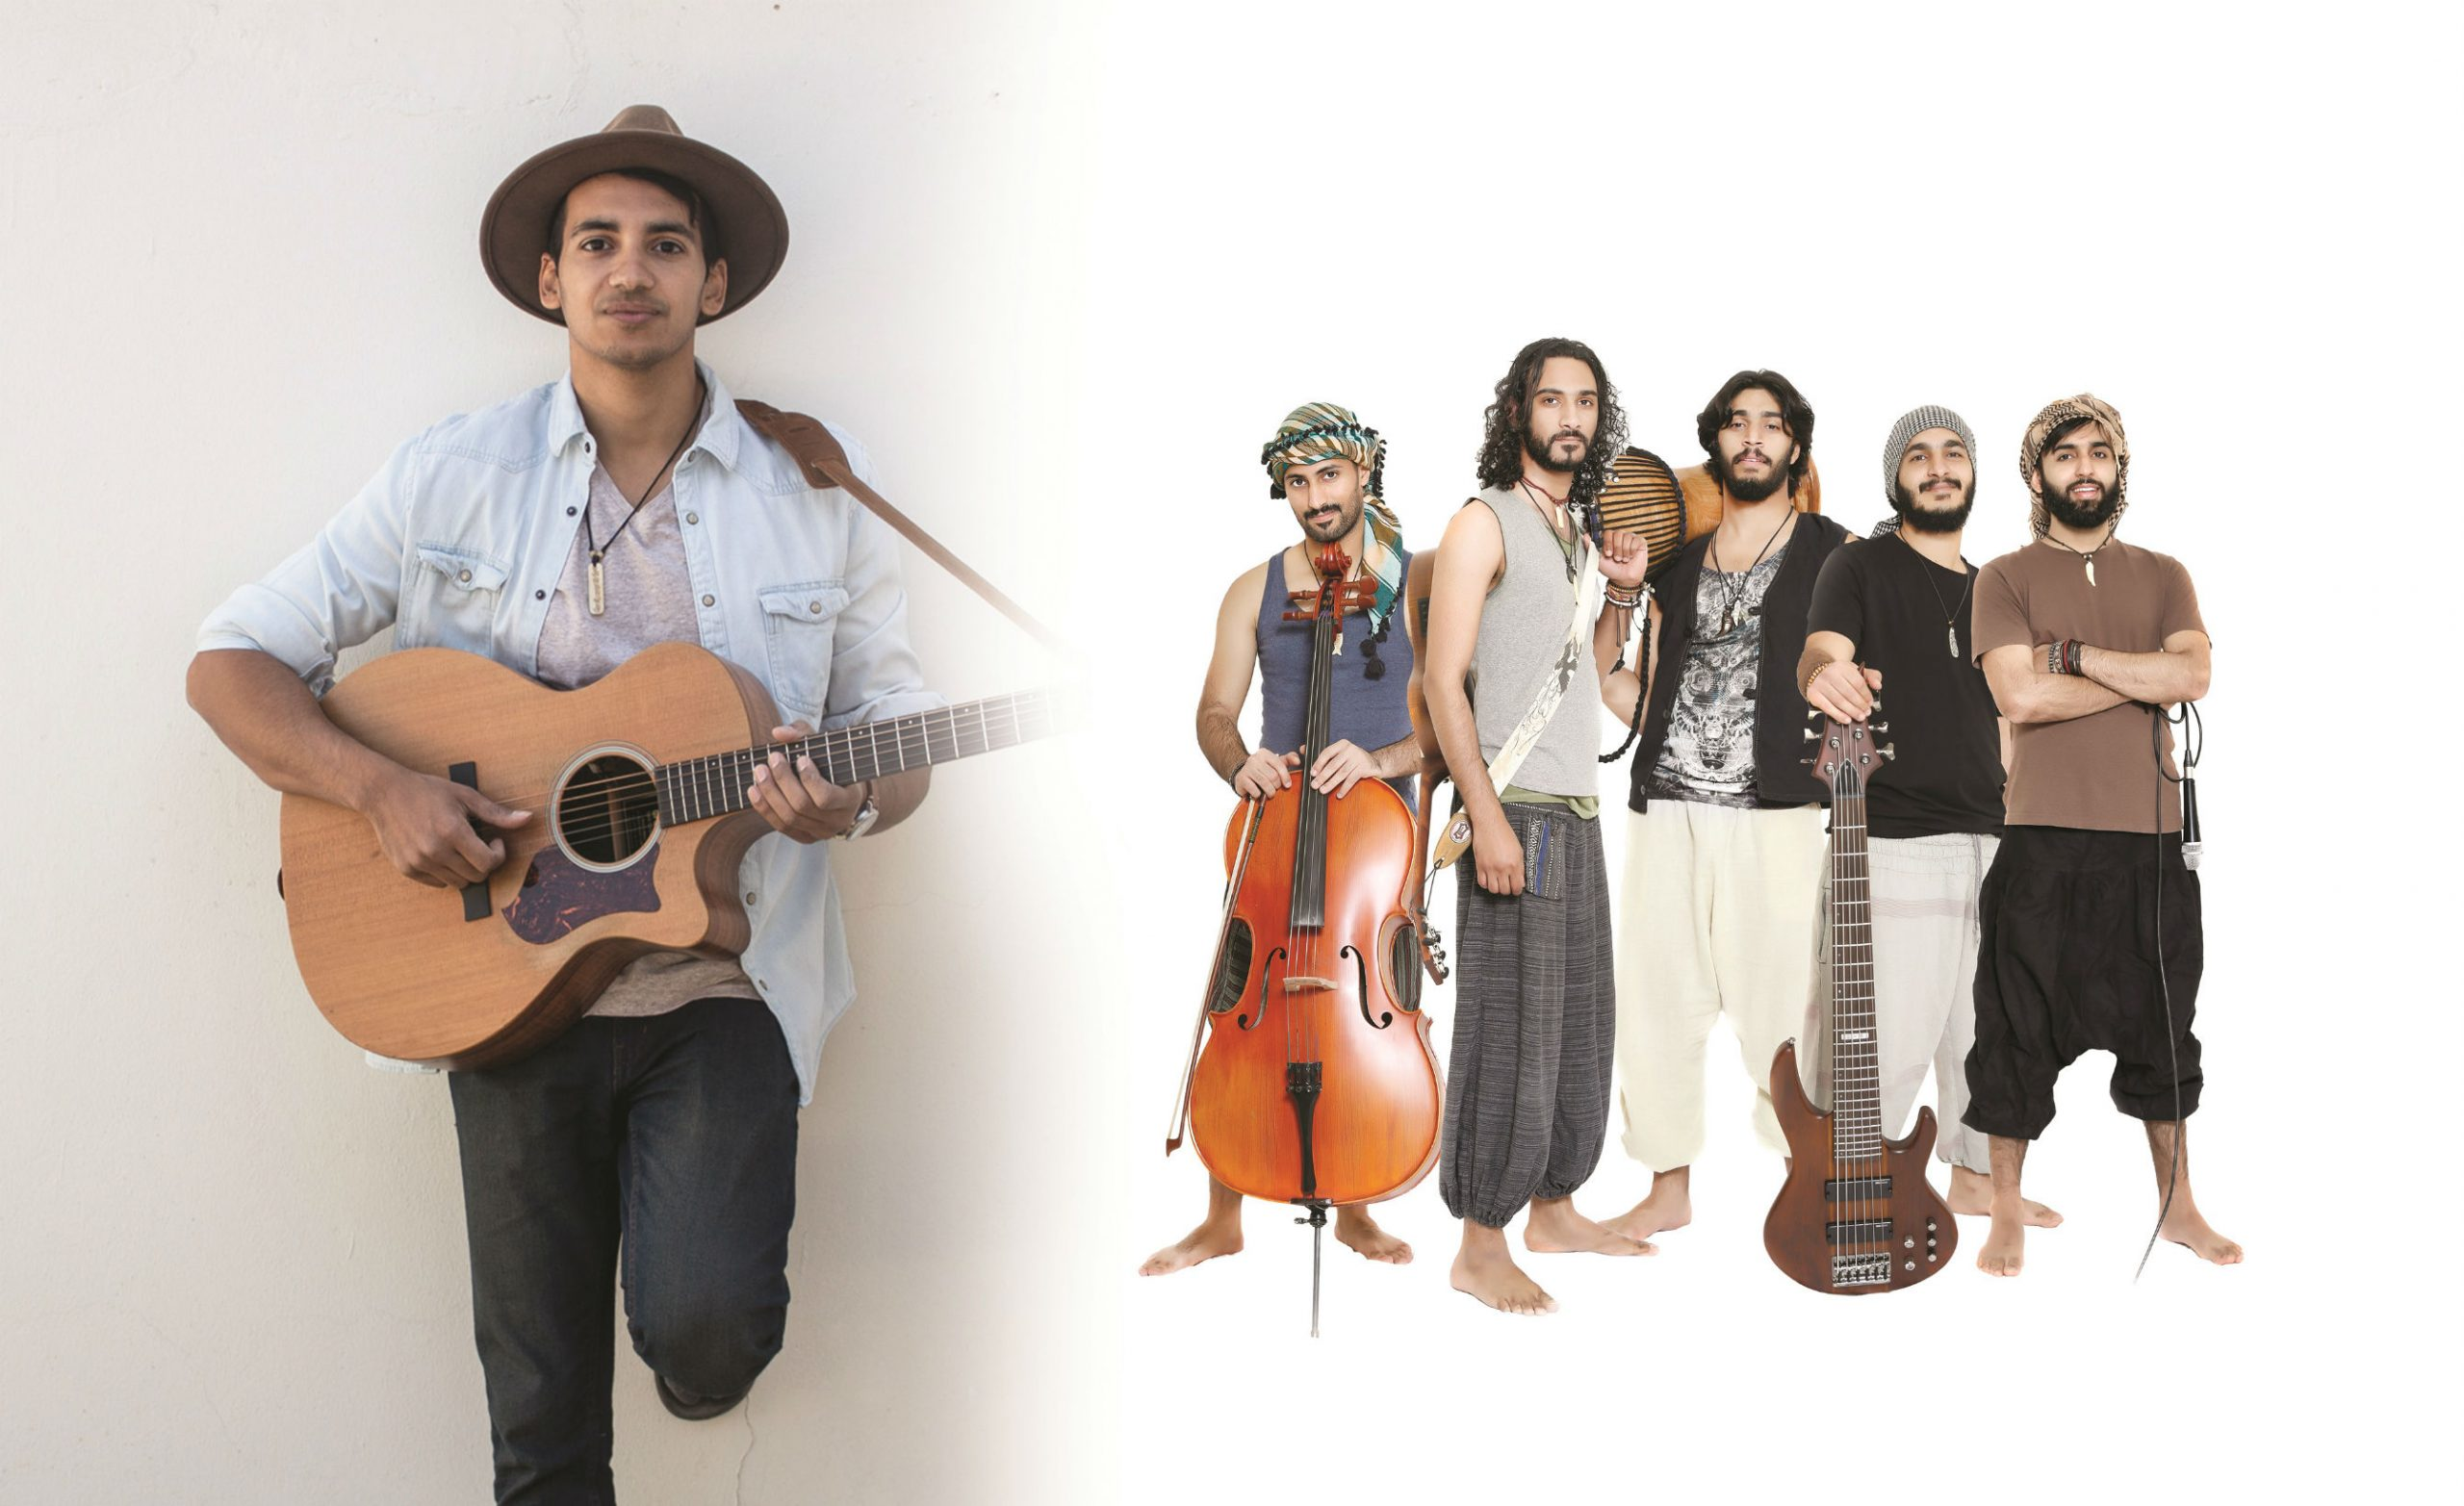 Bahrain's Mo Zowayed and Majaz to perform a distinctive musical concert as part of the Spring of Culture